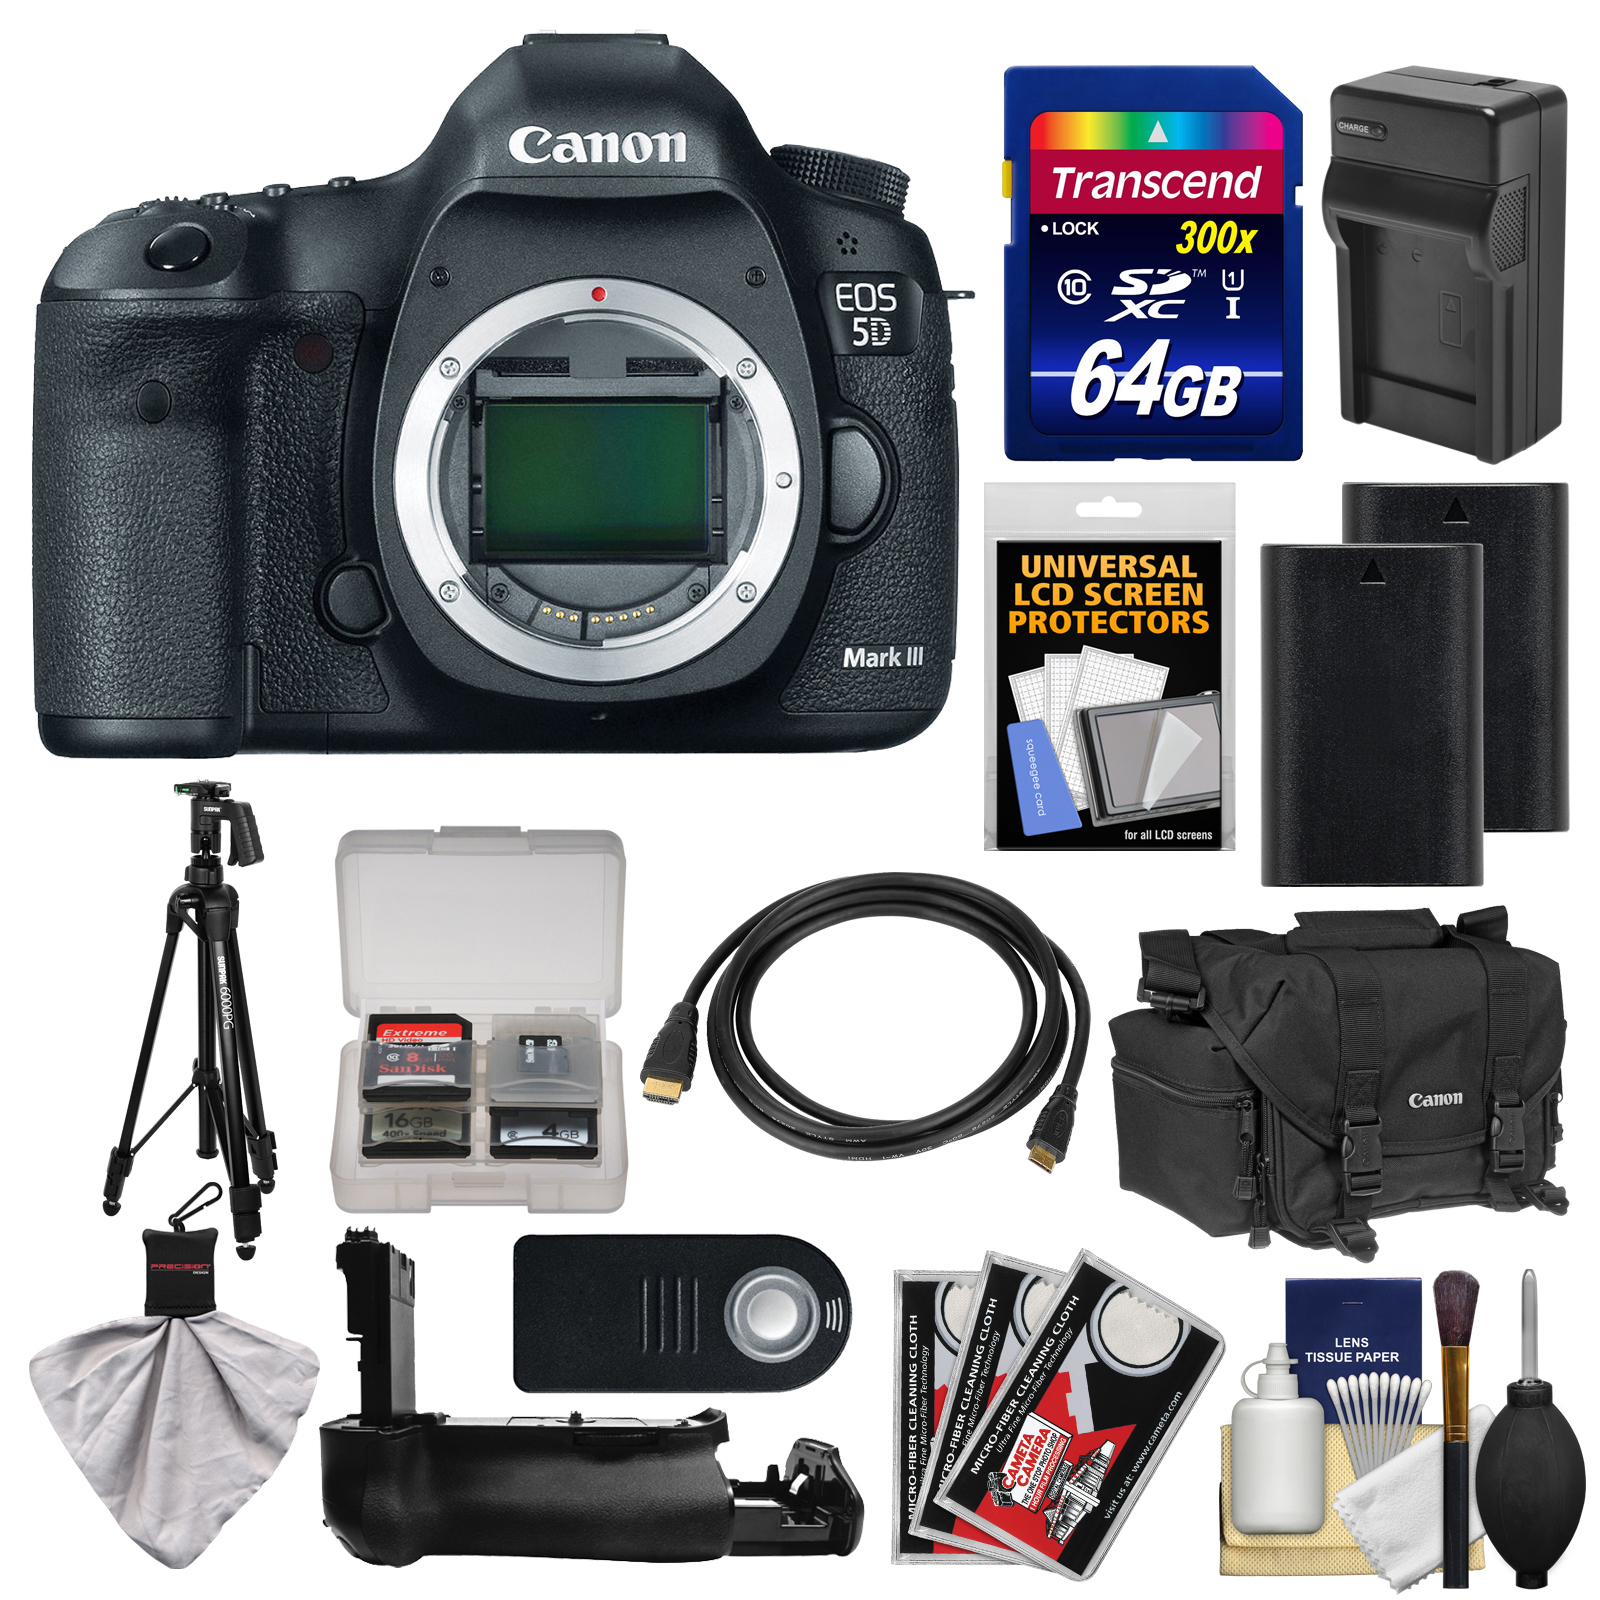 Canon EOS 5D Mark III Digital SLR Camera Body with Case + 2 Batteries & Charger + Grip + Tripod + Accessory Kit by Canon